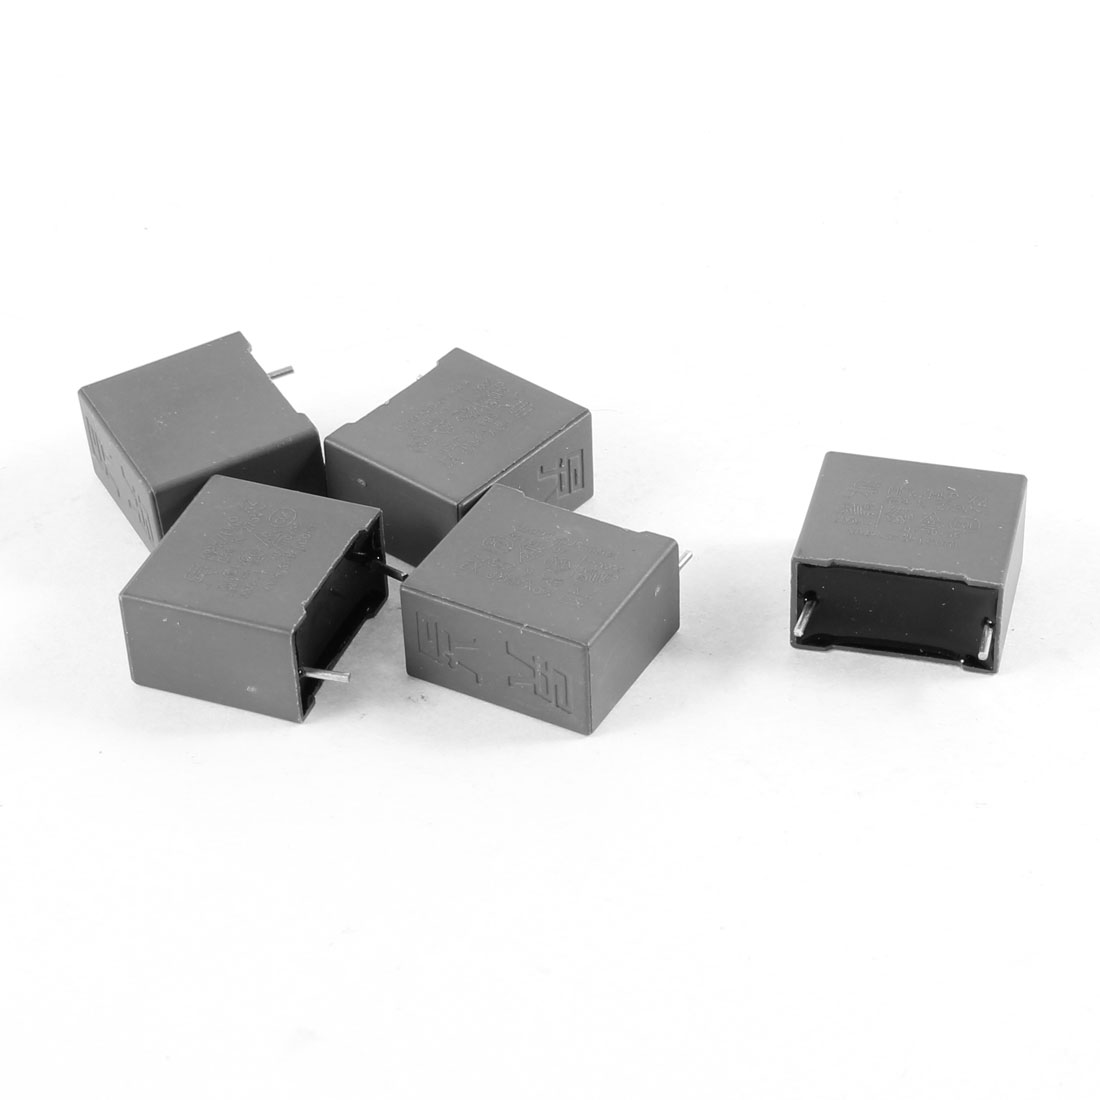 5 Pcs Gray Rectangle Mylar Polyester Film Capacitors 275V 0.68uF 10% Tolerance